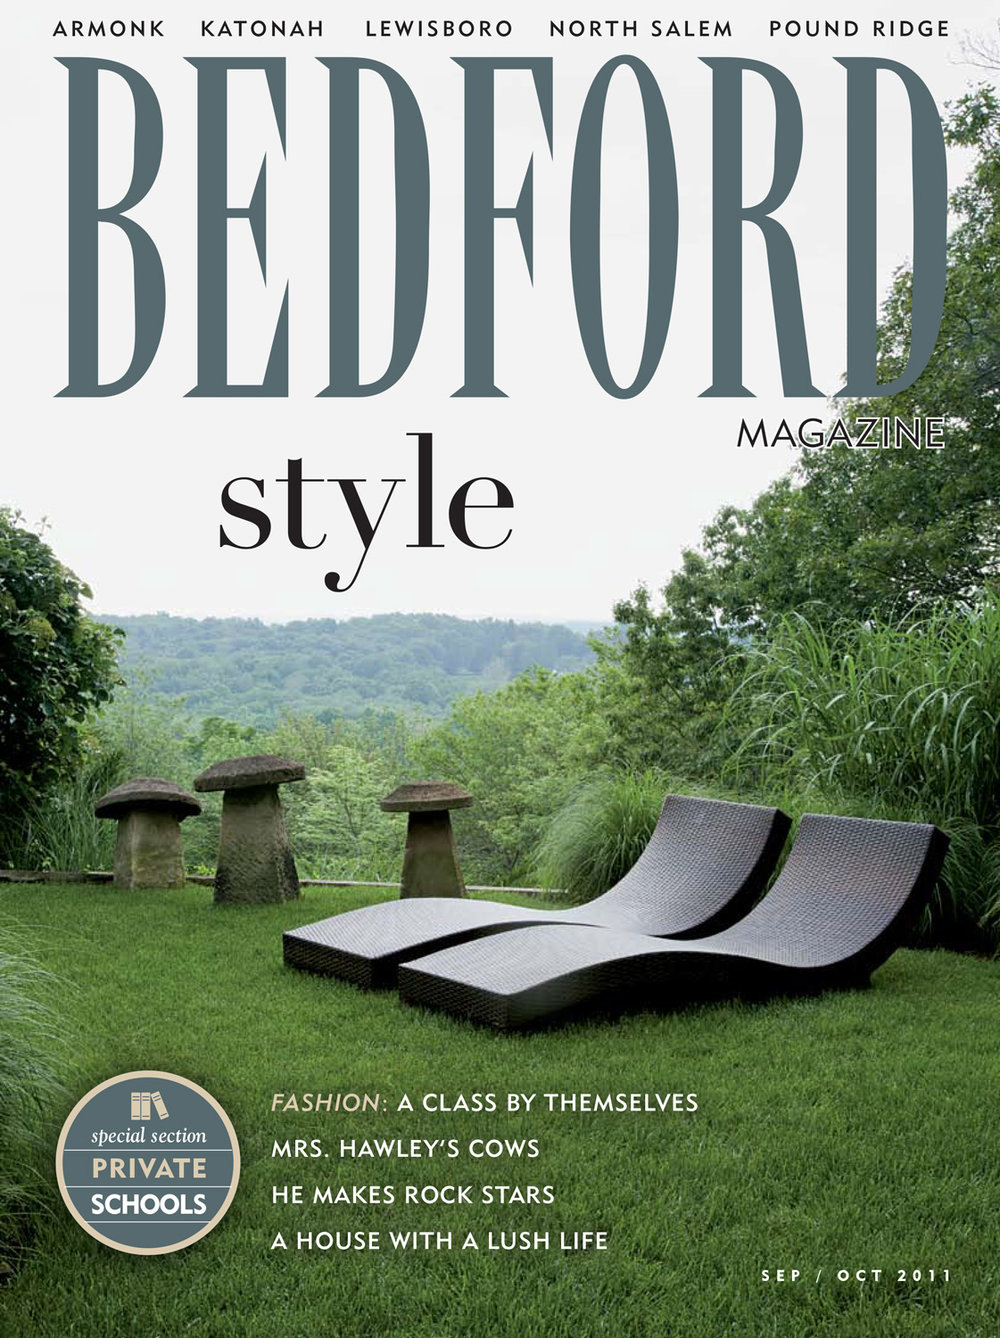 Bedford Magazine September/October 2012